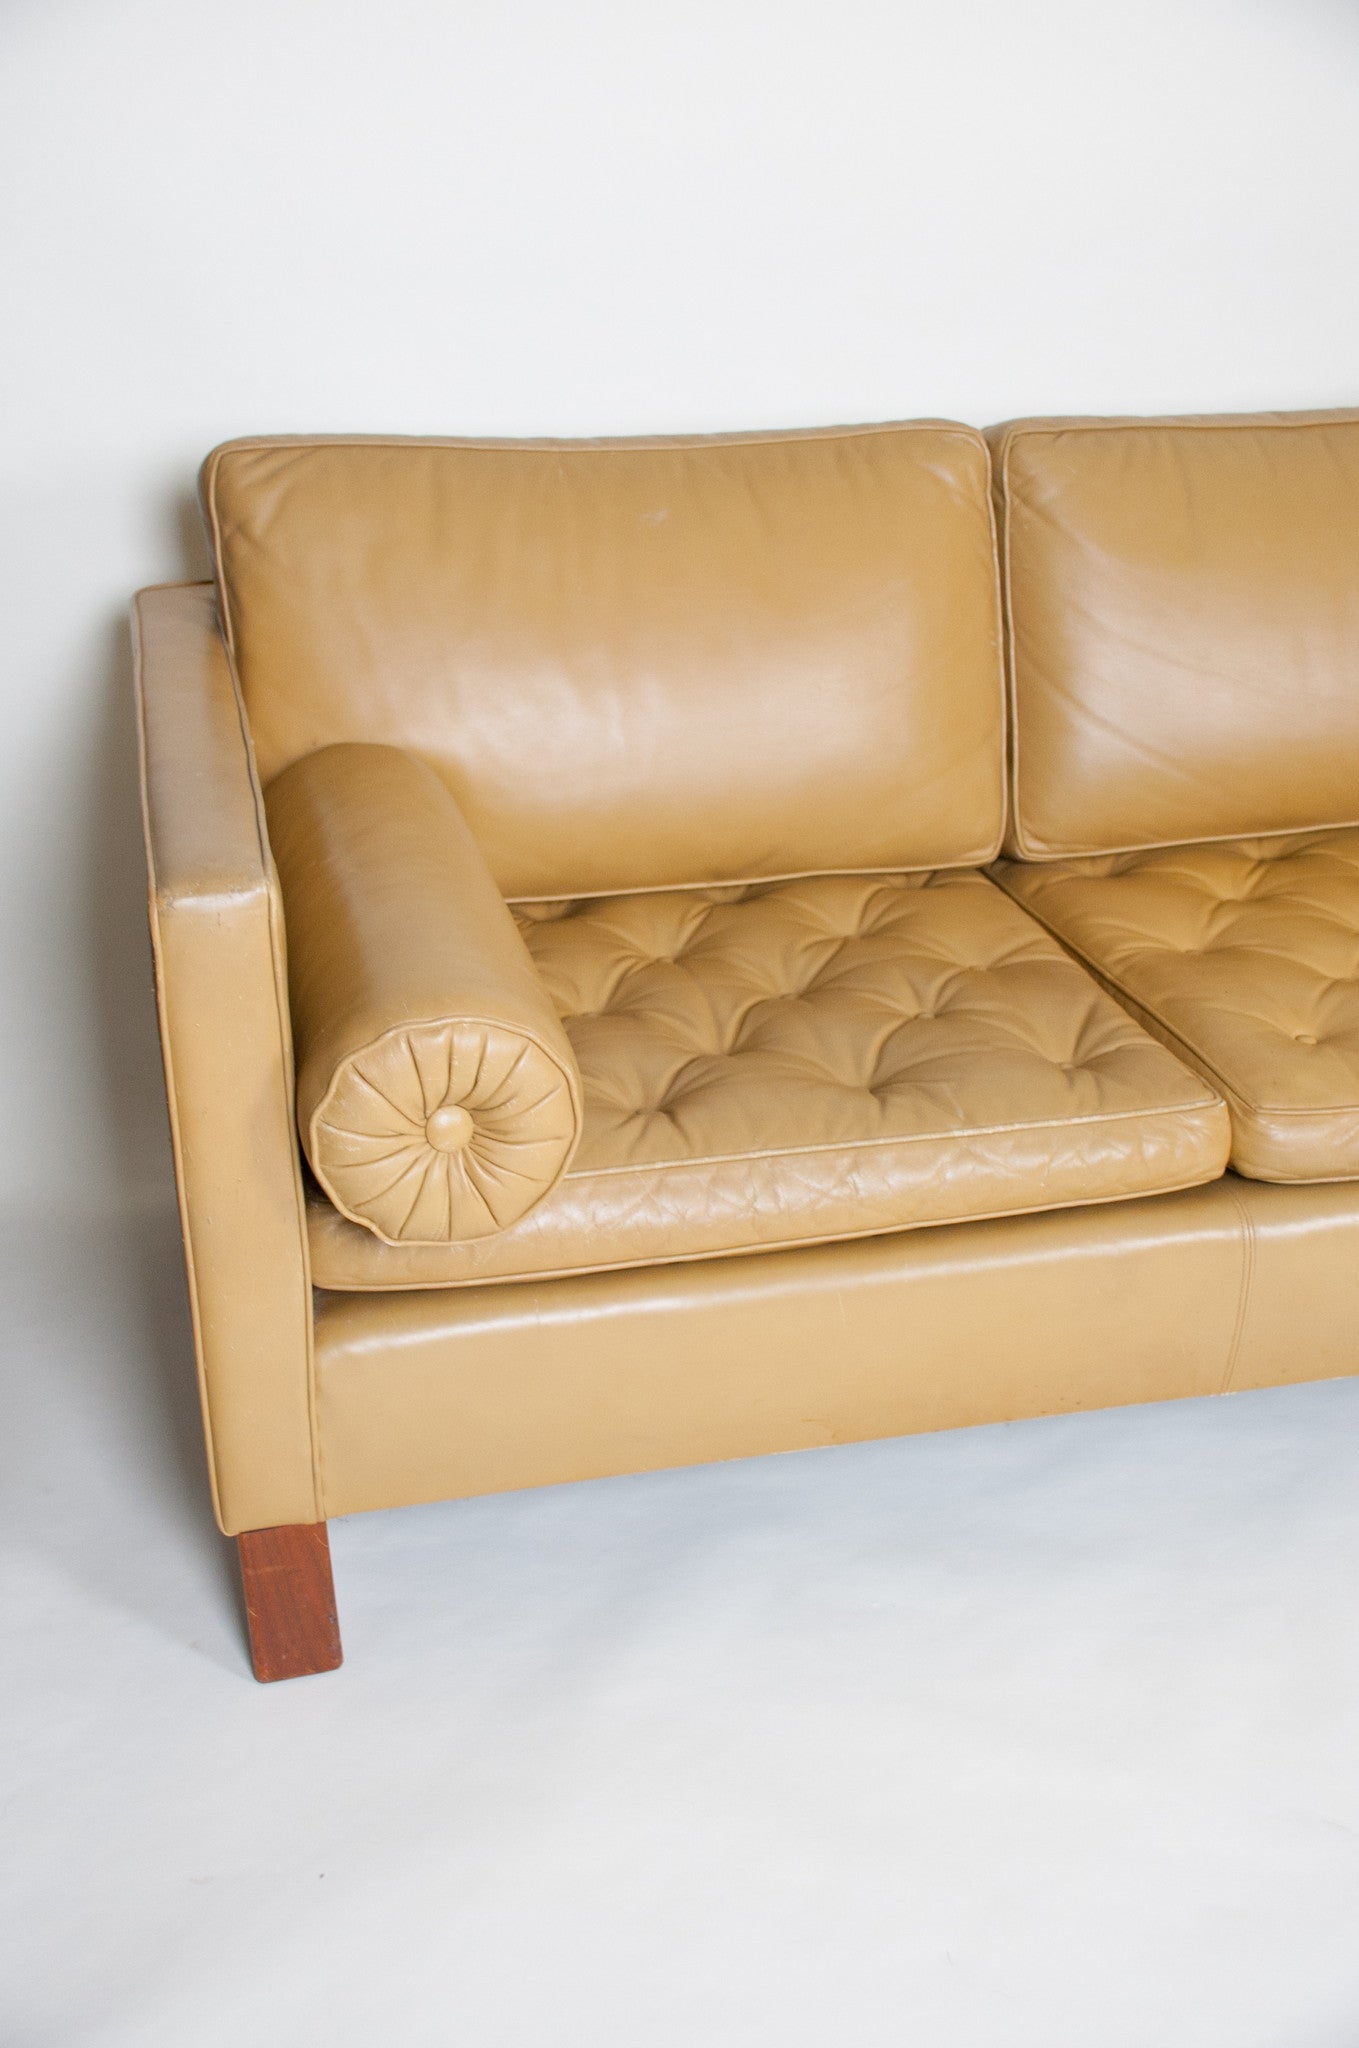 SOLD Mies Van Der Rohe For Knoll Leather Sofa Vintage RARE